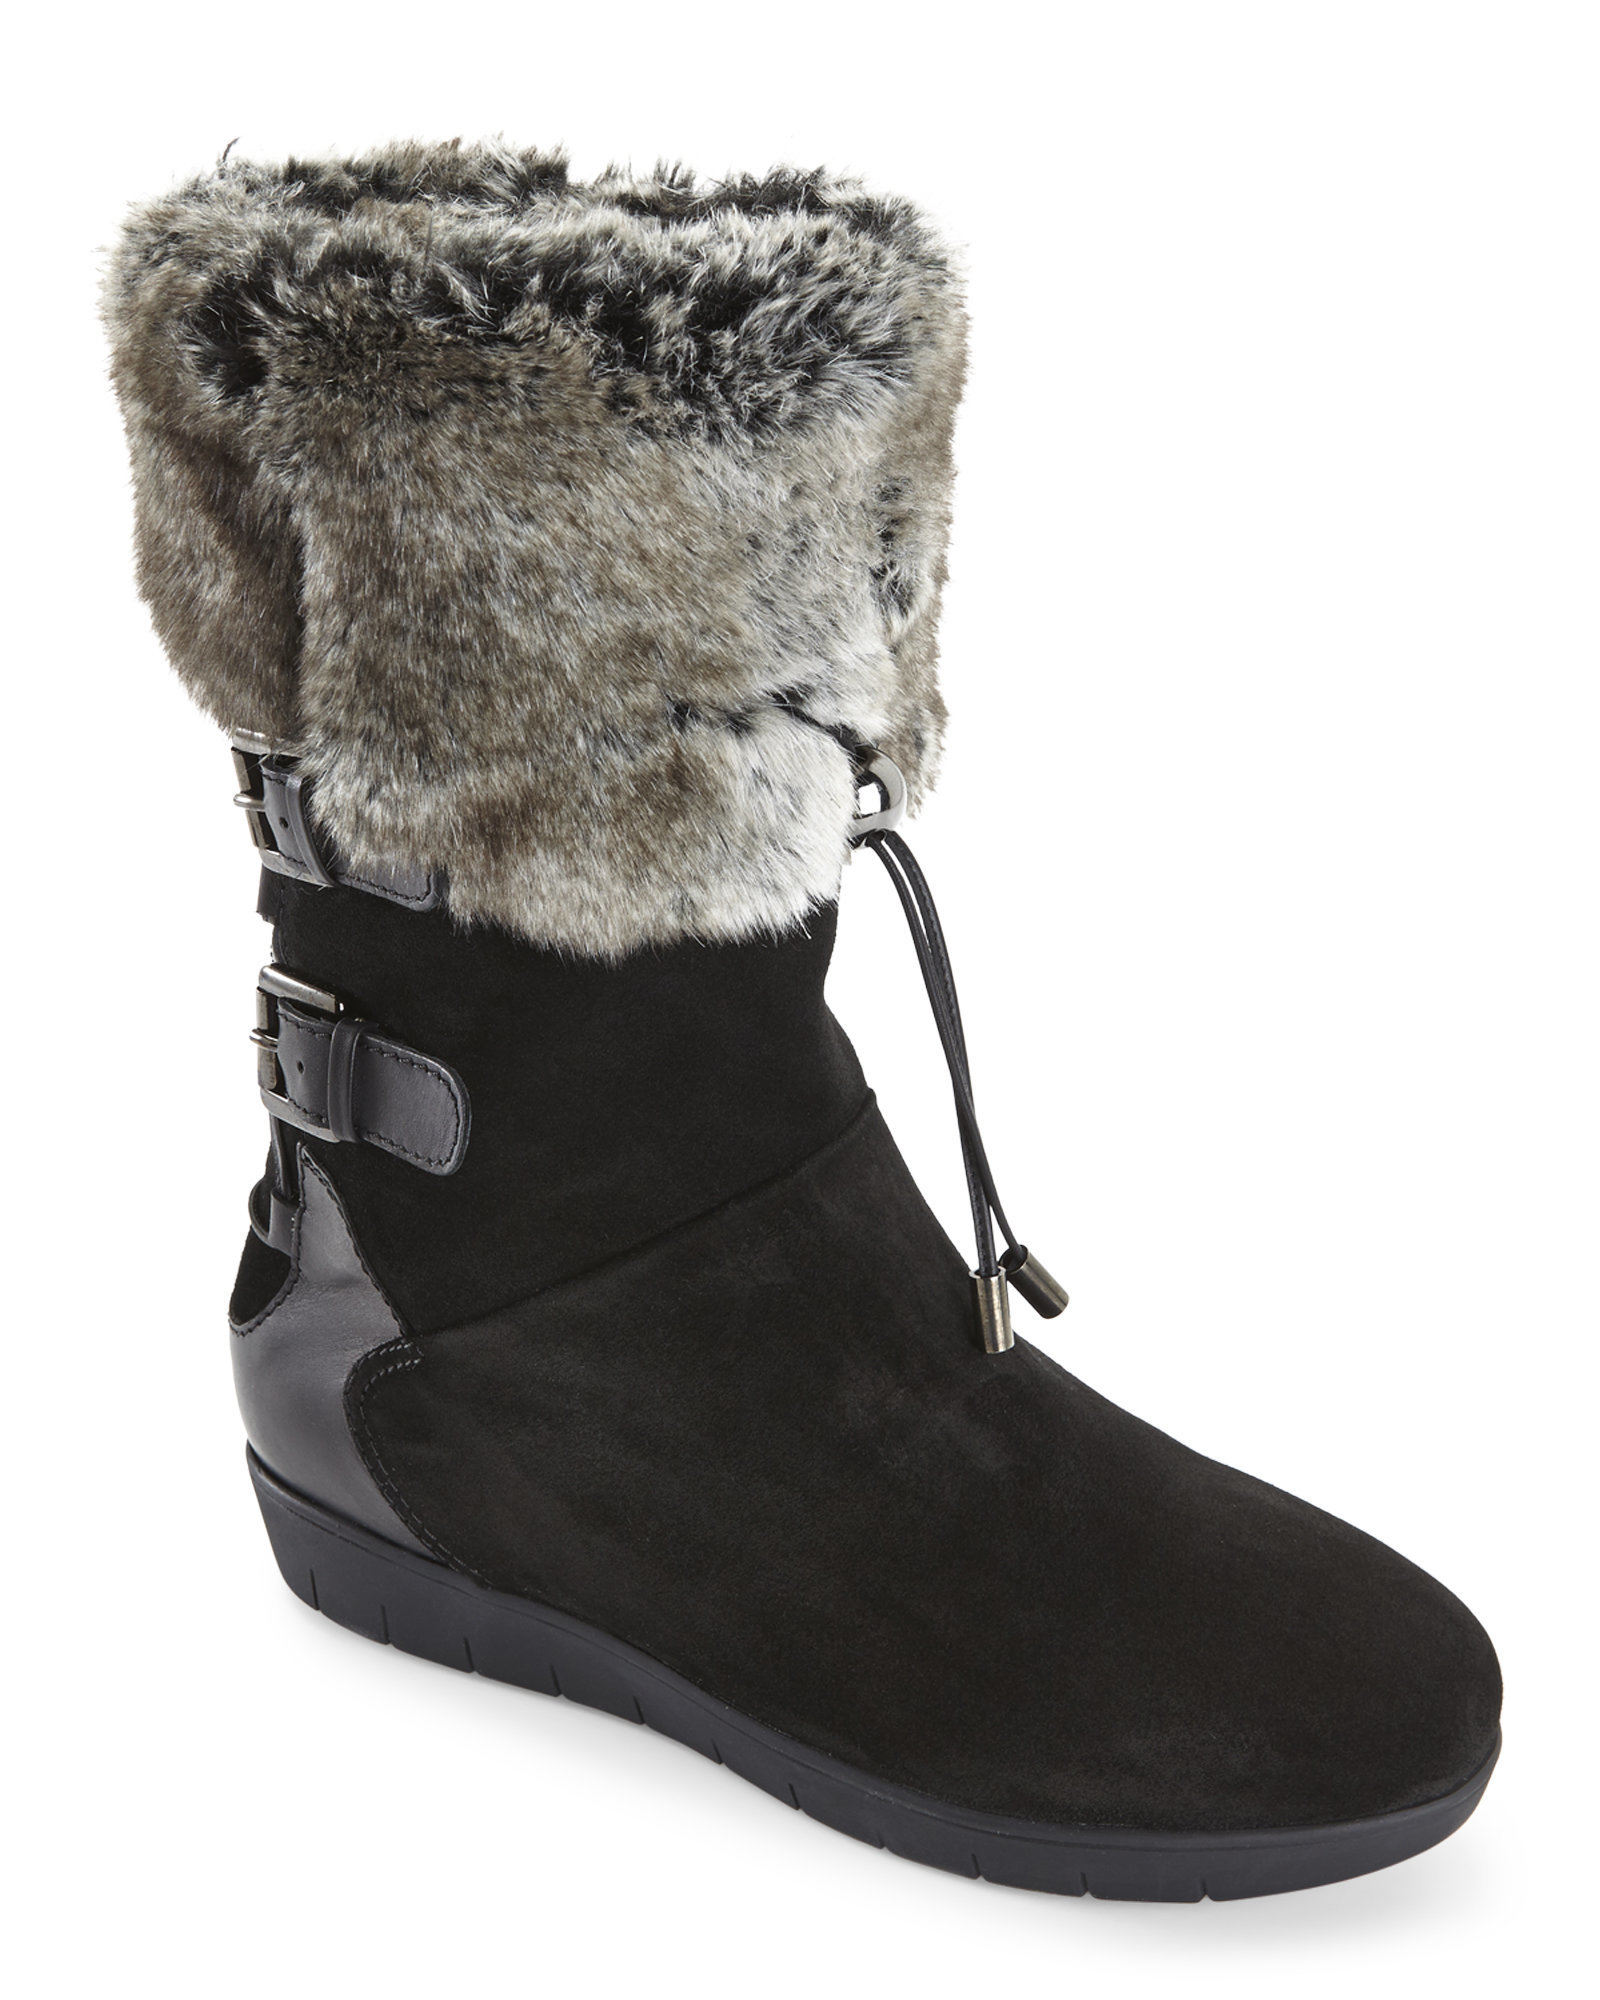 Bold quilting highlights the shaft of this snow-savvy boot. The traction sole offers a sturdy, no-slip grip.